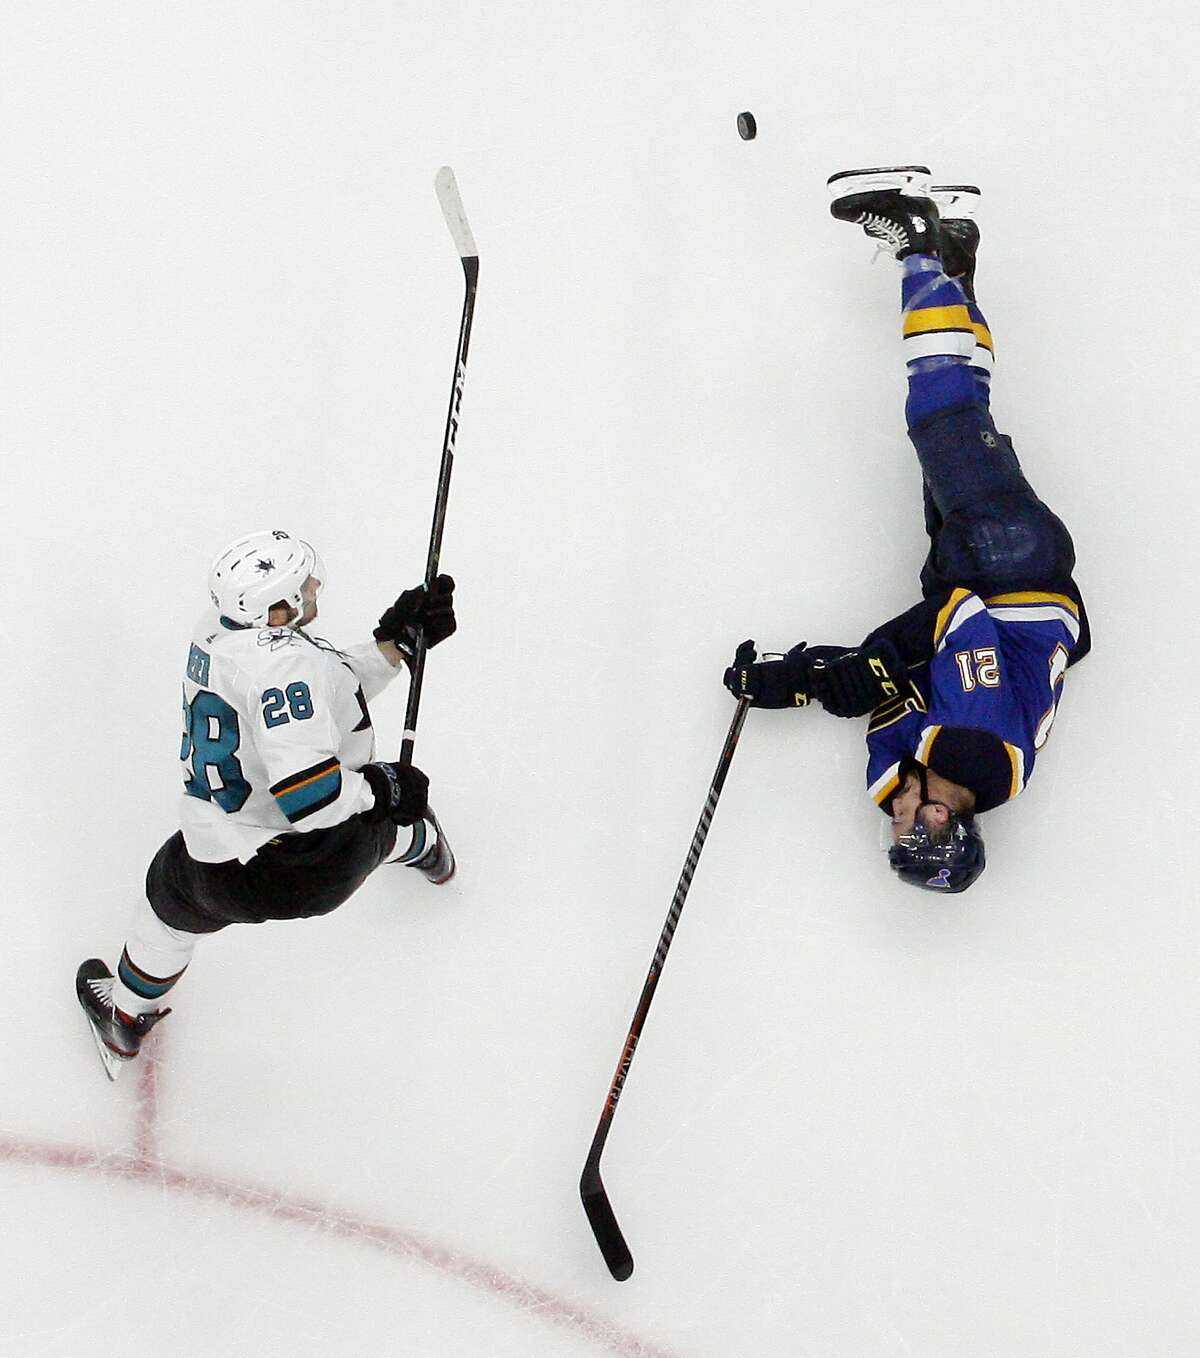 St. Louis Blues center Tyler Bozak (21) slides on the ice to block a shot by San Jose Sharks right wing Timo Meier (28), of Switzerland, during the third period in Game 4 of the NHL hockey Stanley Cup Western Conference final series Friday, May 17, 2019, in St. Louis. The Blues won 2-1 to even the series 2-2. (AP Photo/Jeff Roberson)